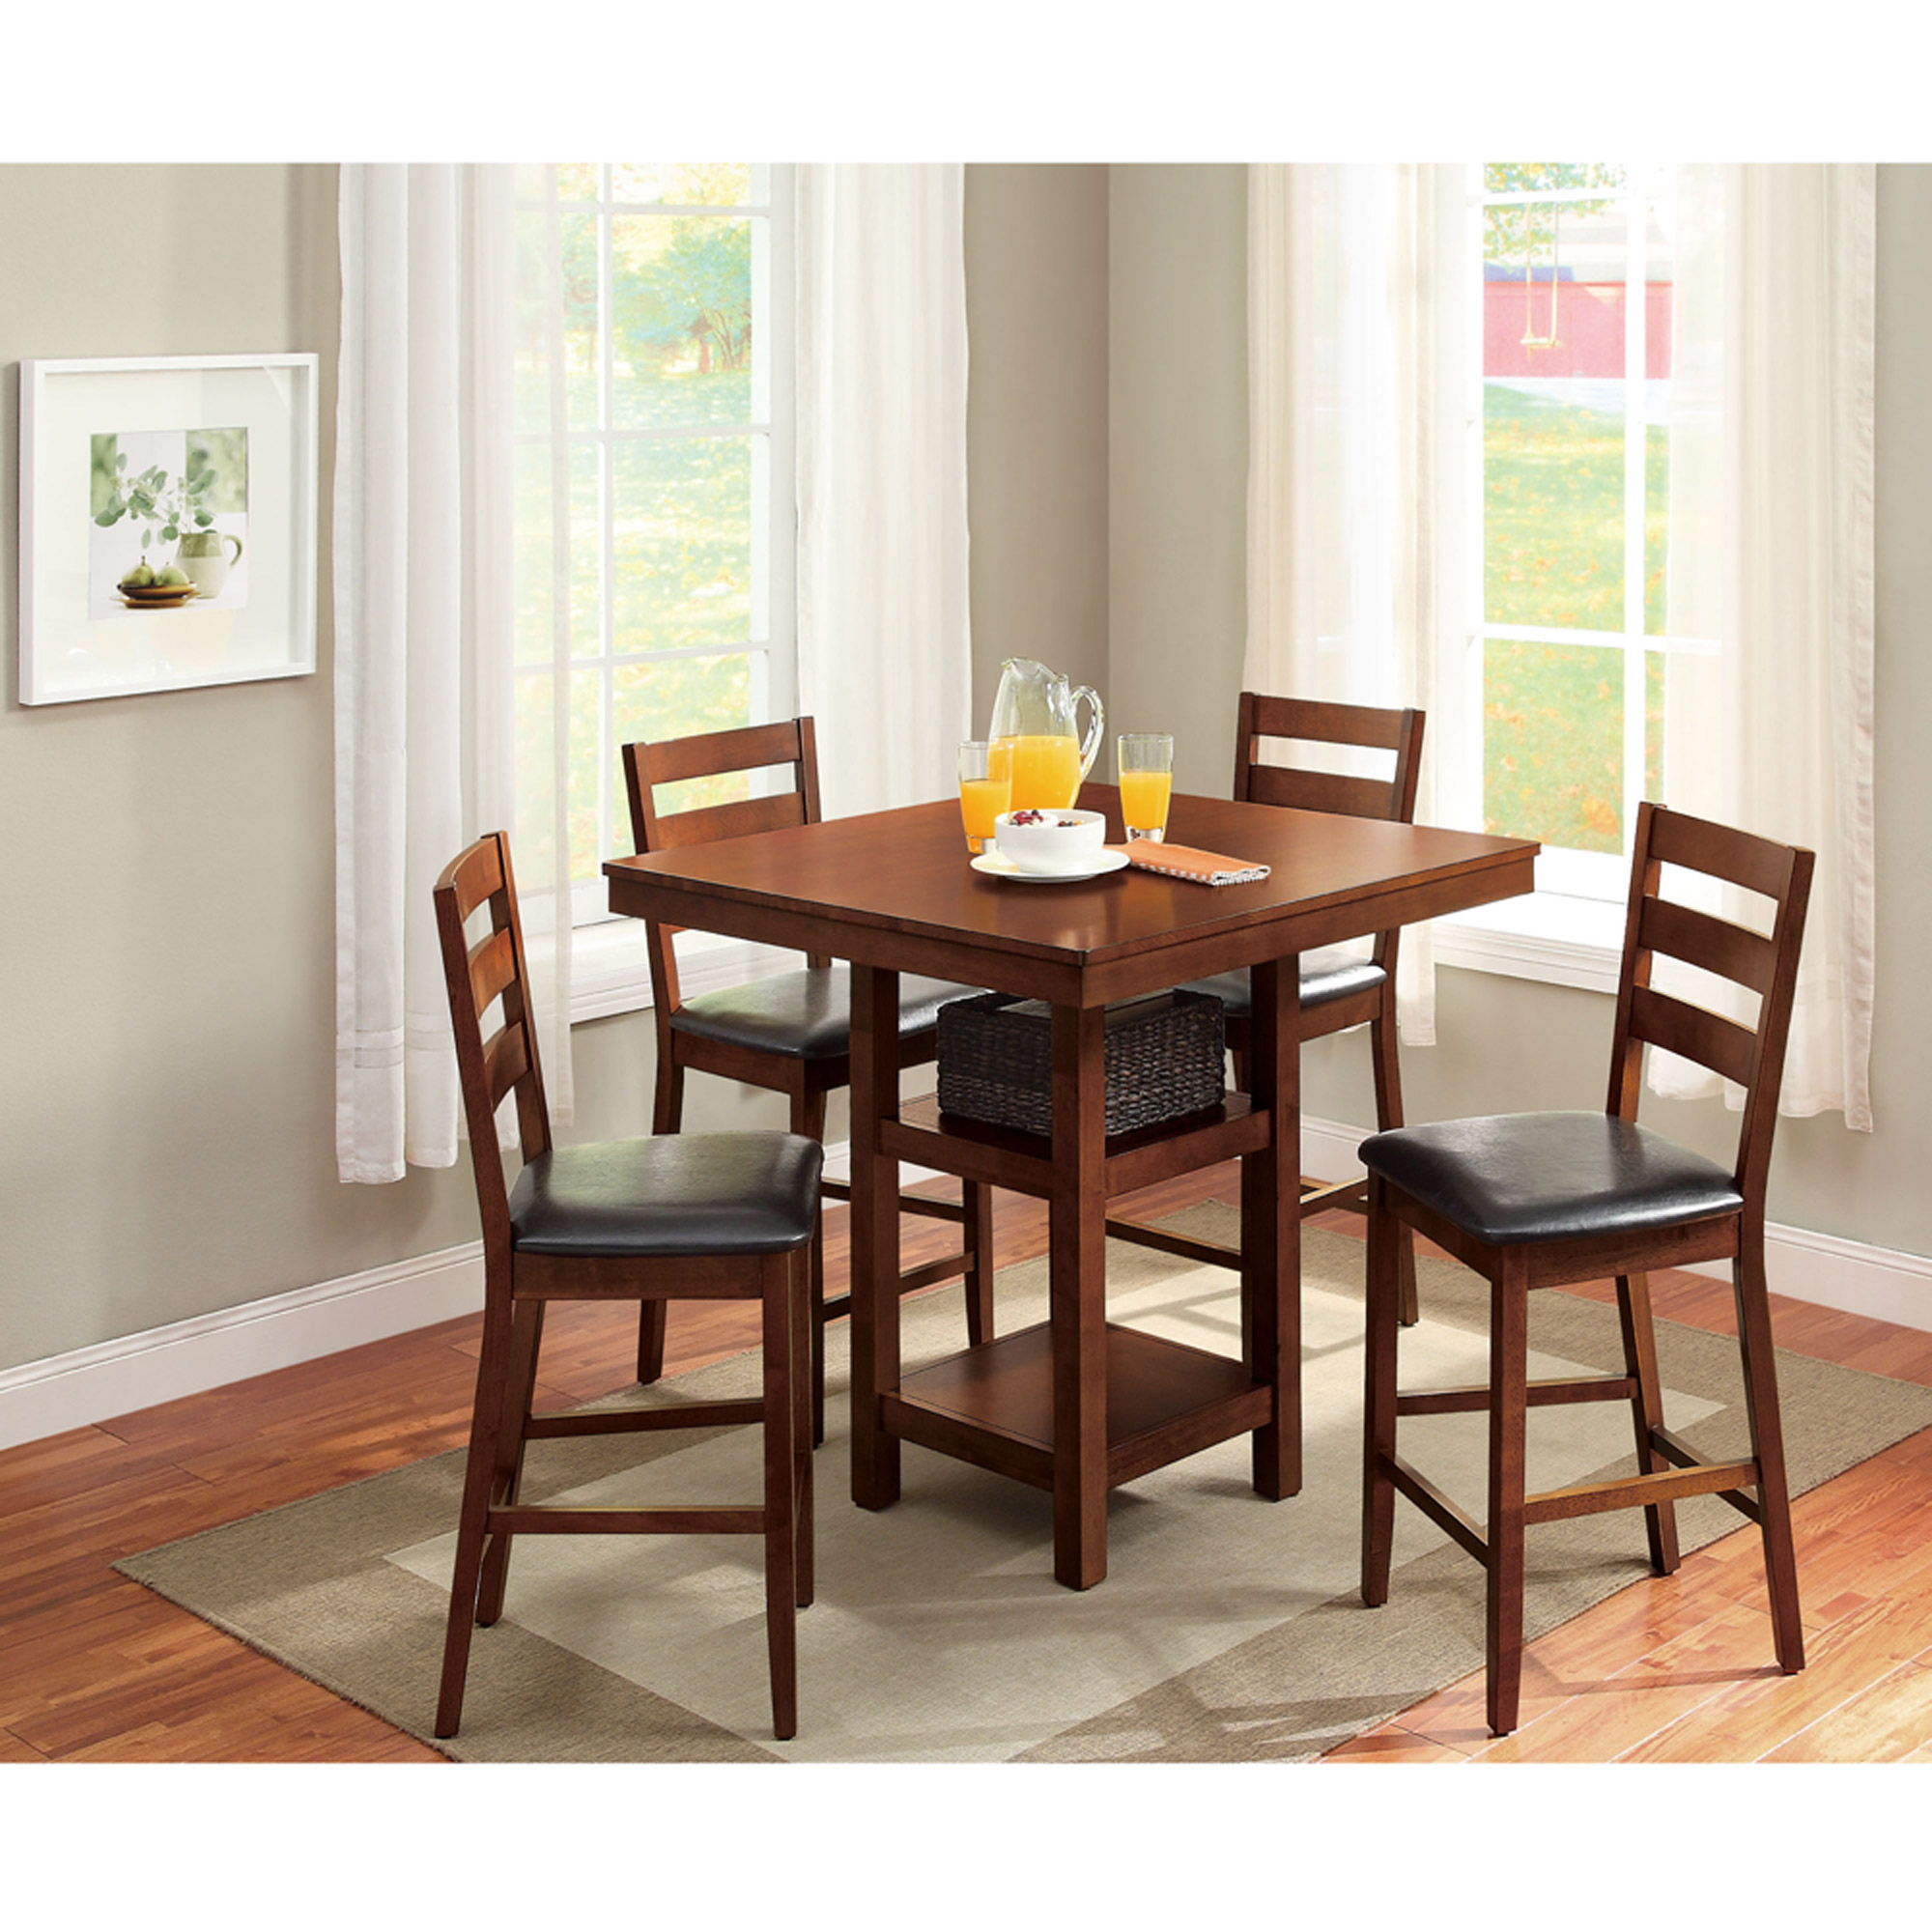 Better Homes And Gardens Dalton Park 5 Piece Counter Height Dining Set,  Includes Table